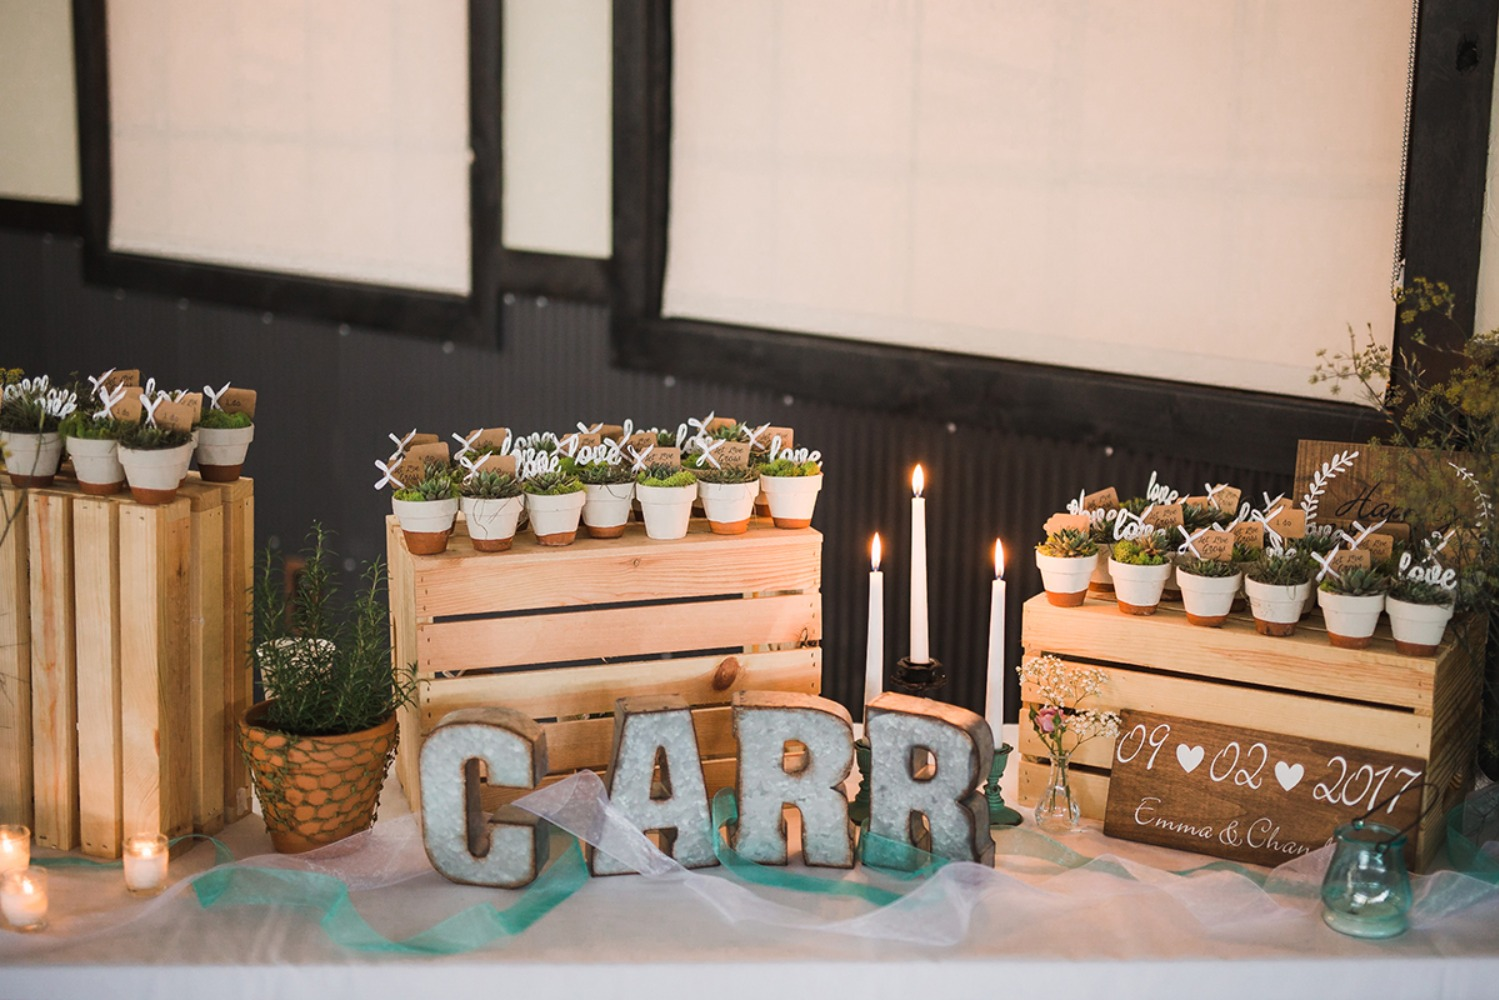 sweet rustic succulent flavor table